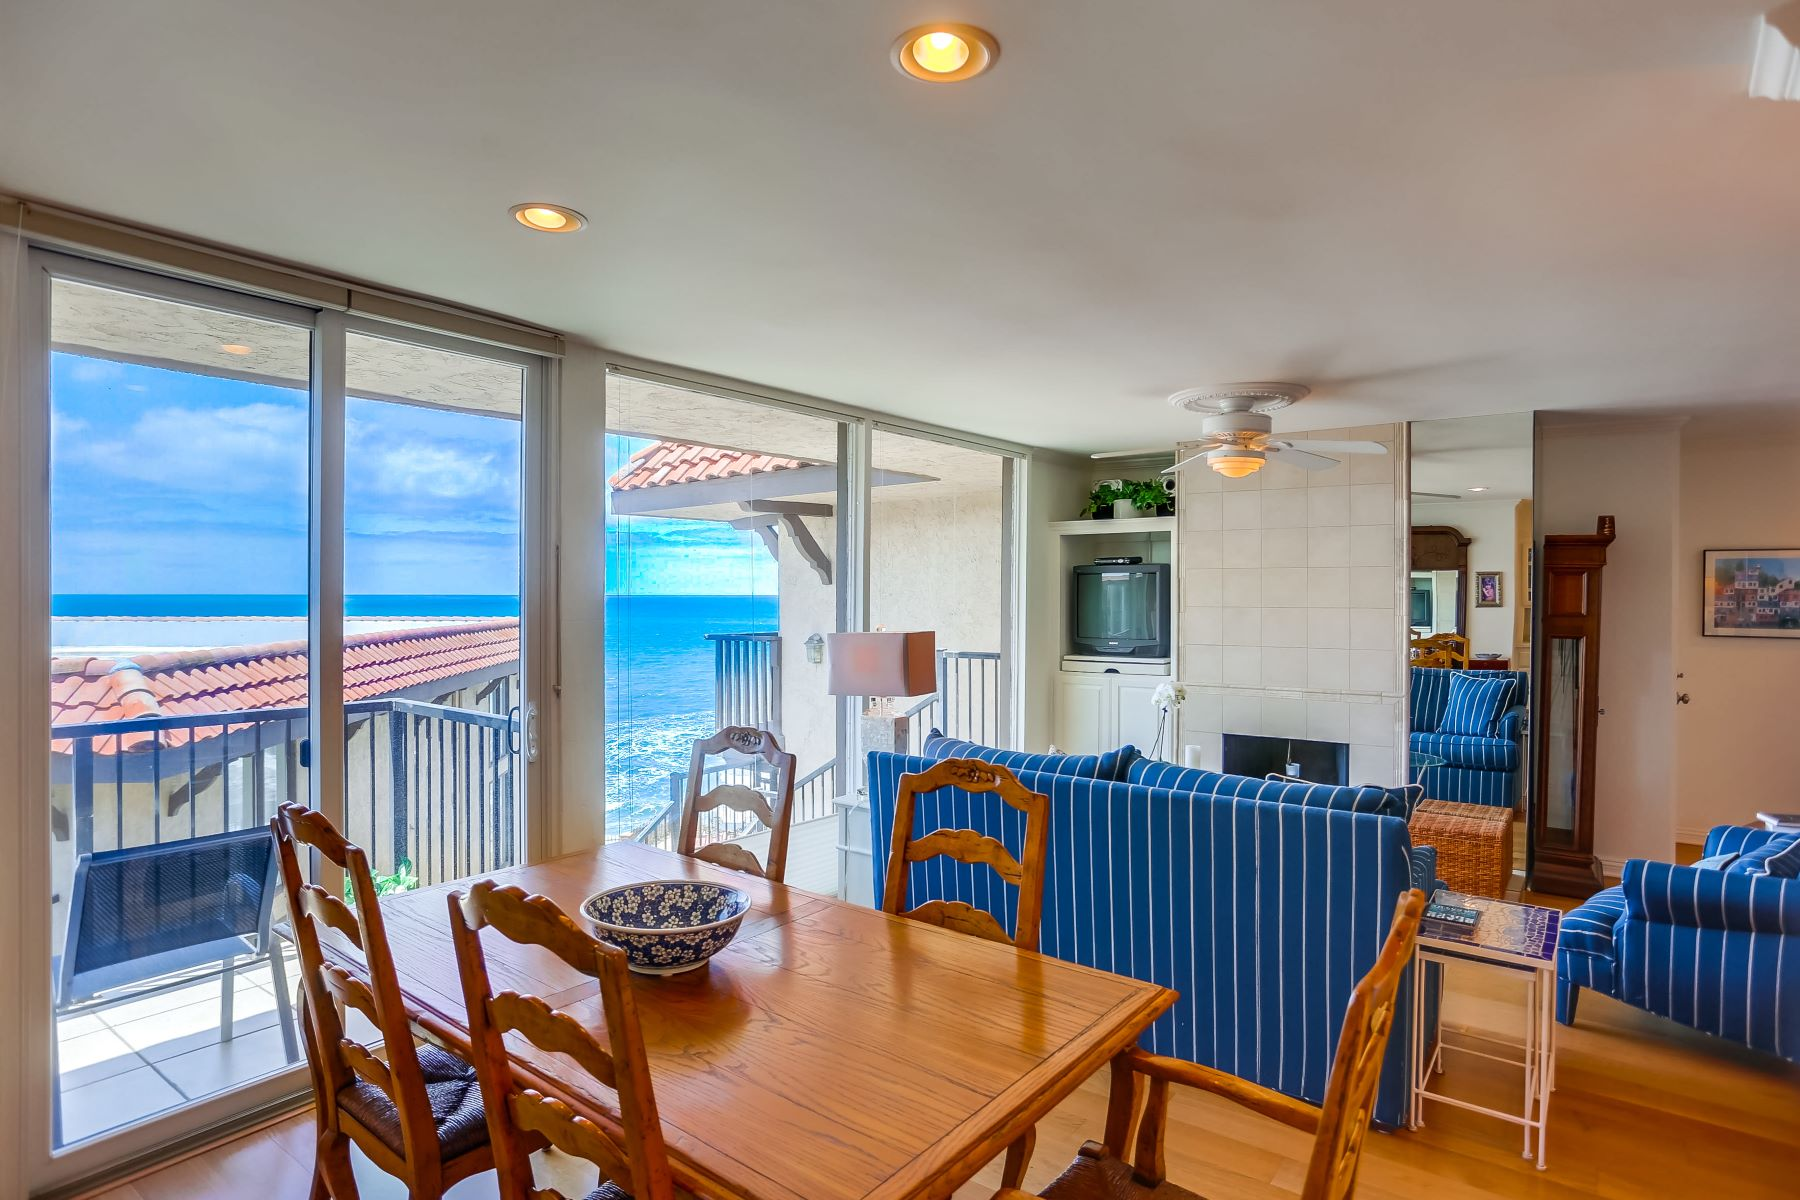 Condominium for Active at 190 Del Mar Shores Terrace #84 190 Del Mar Shores Terrace #84 Solana Beach, California 92075 United States